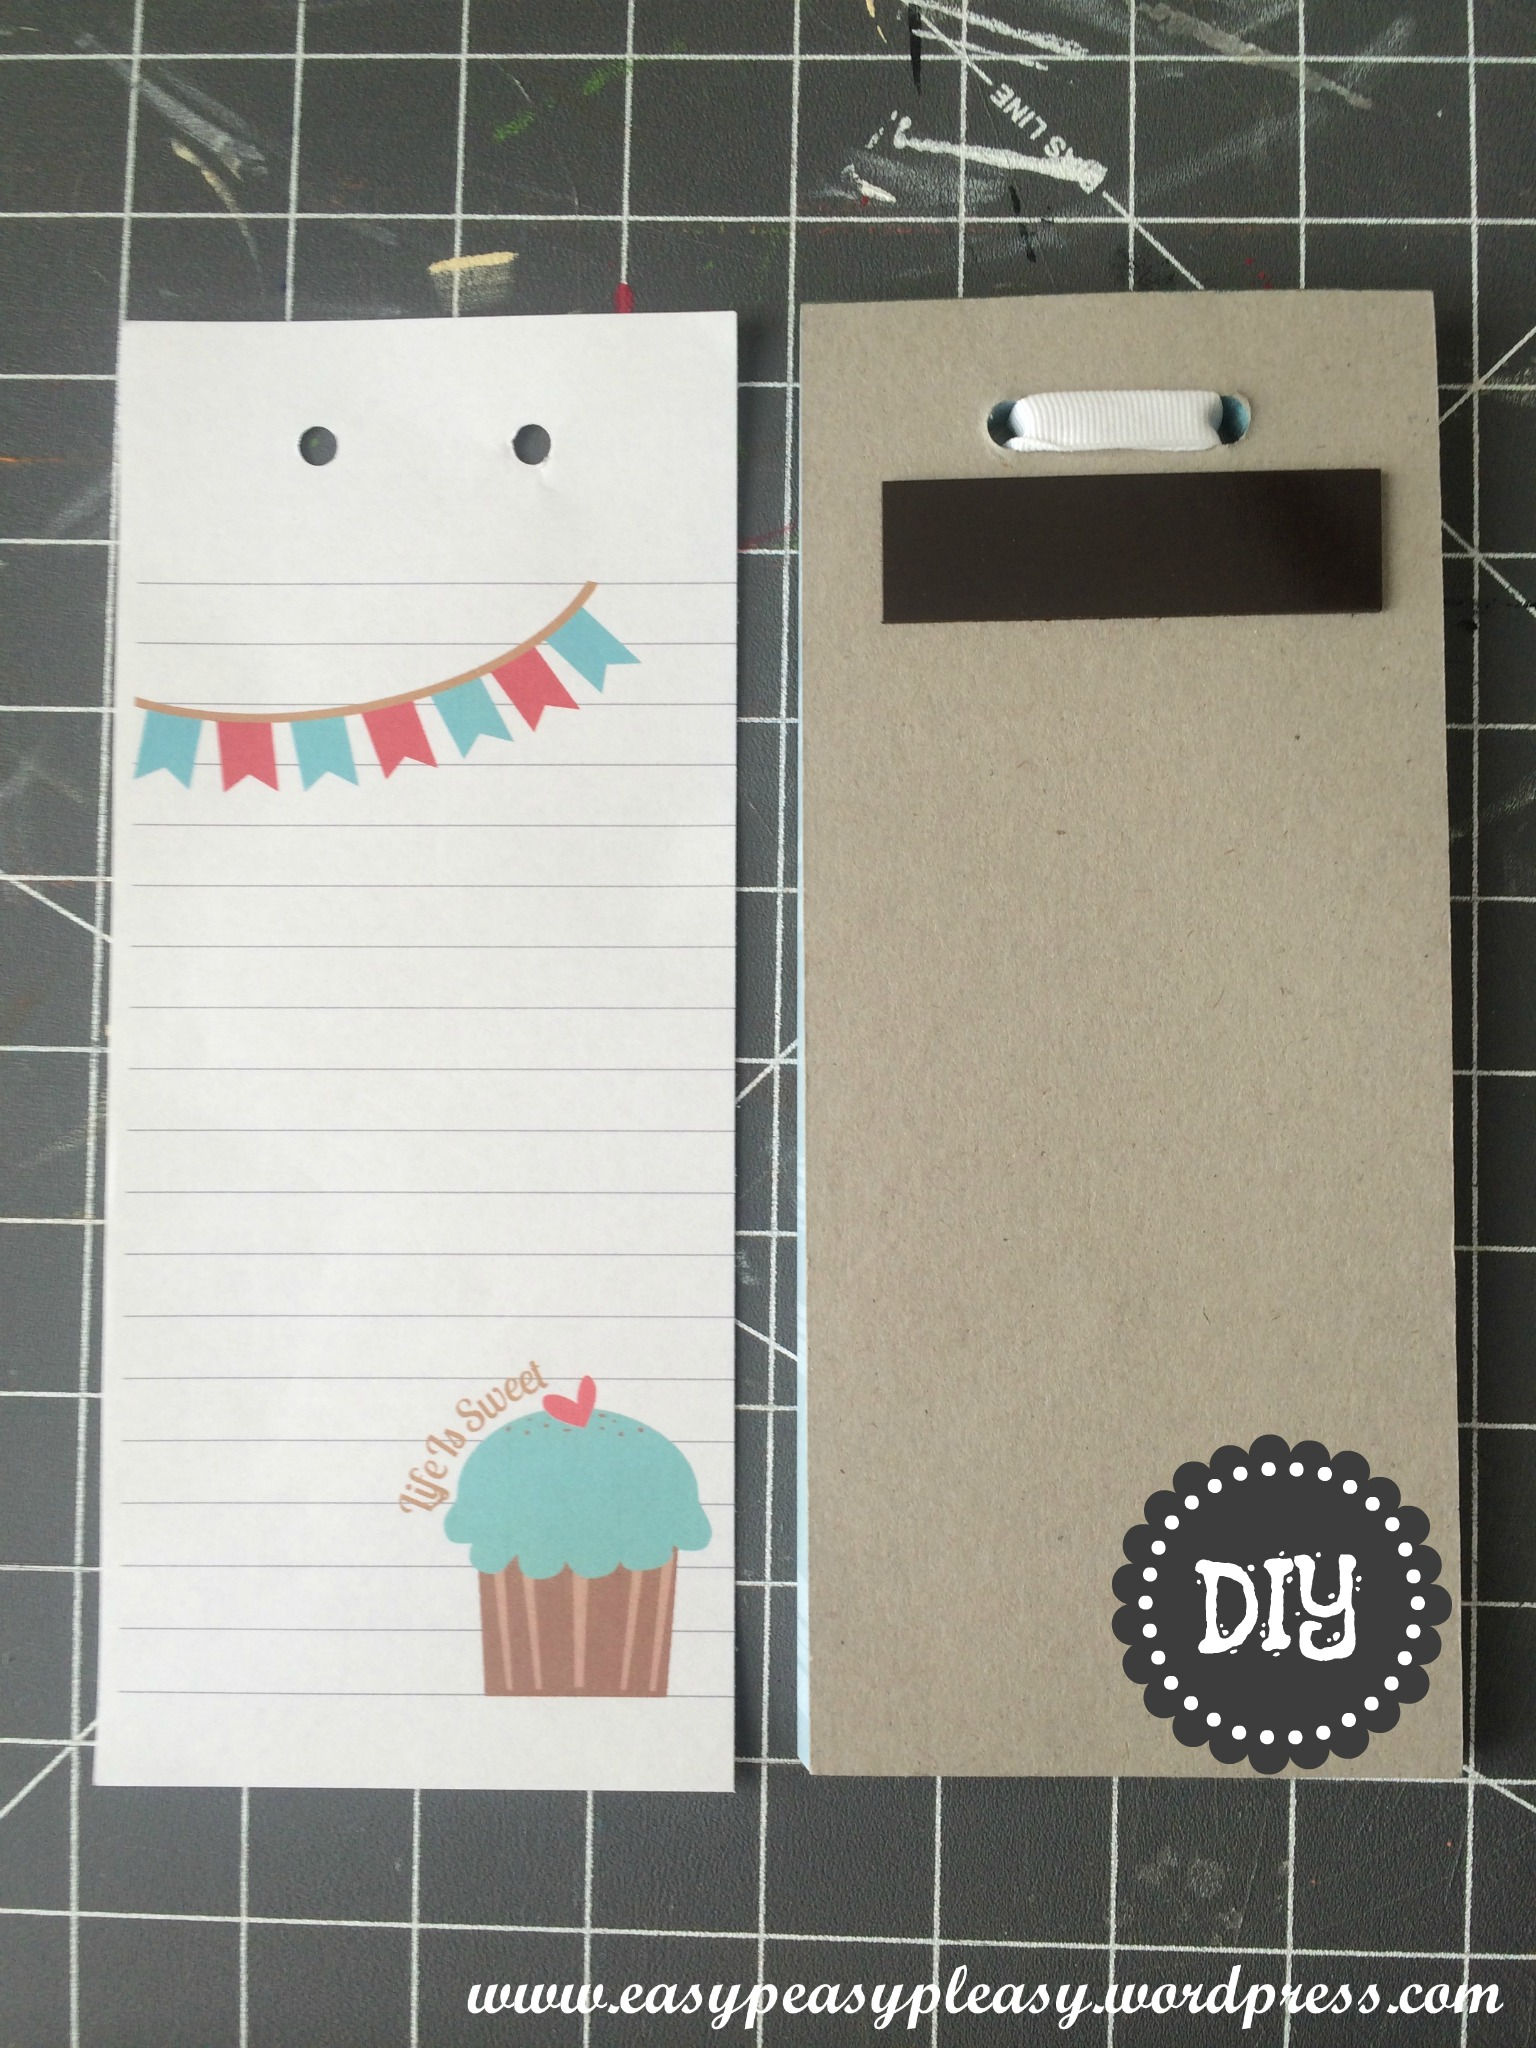 Life Is Sweet Refrigerator Notepad free printable and DIY Instructions